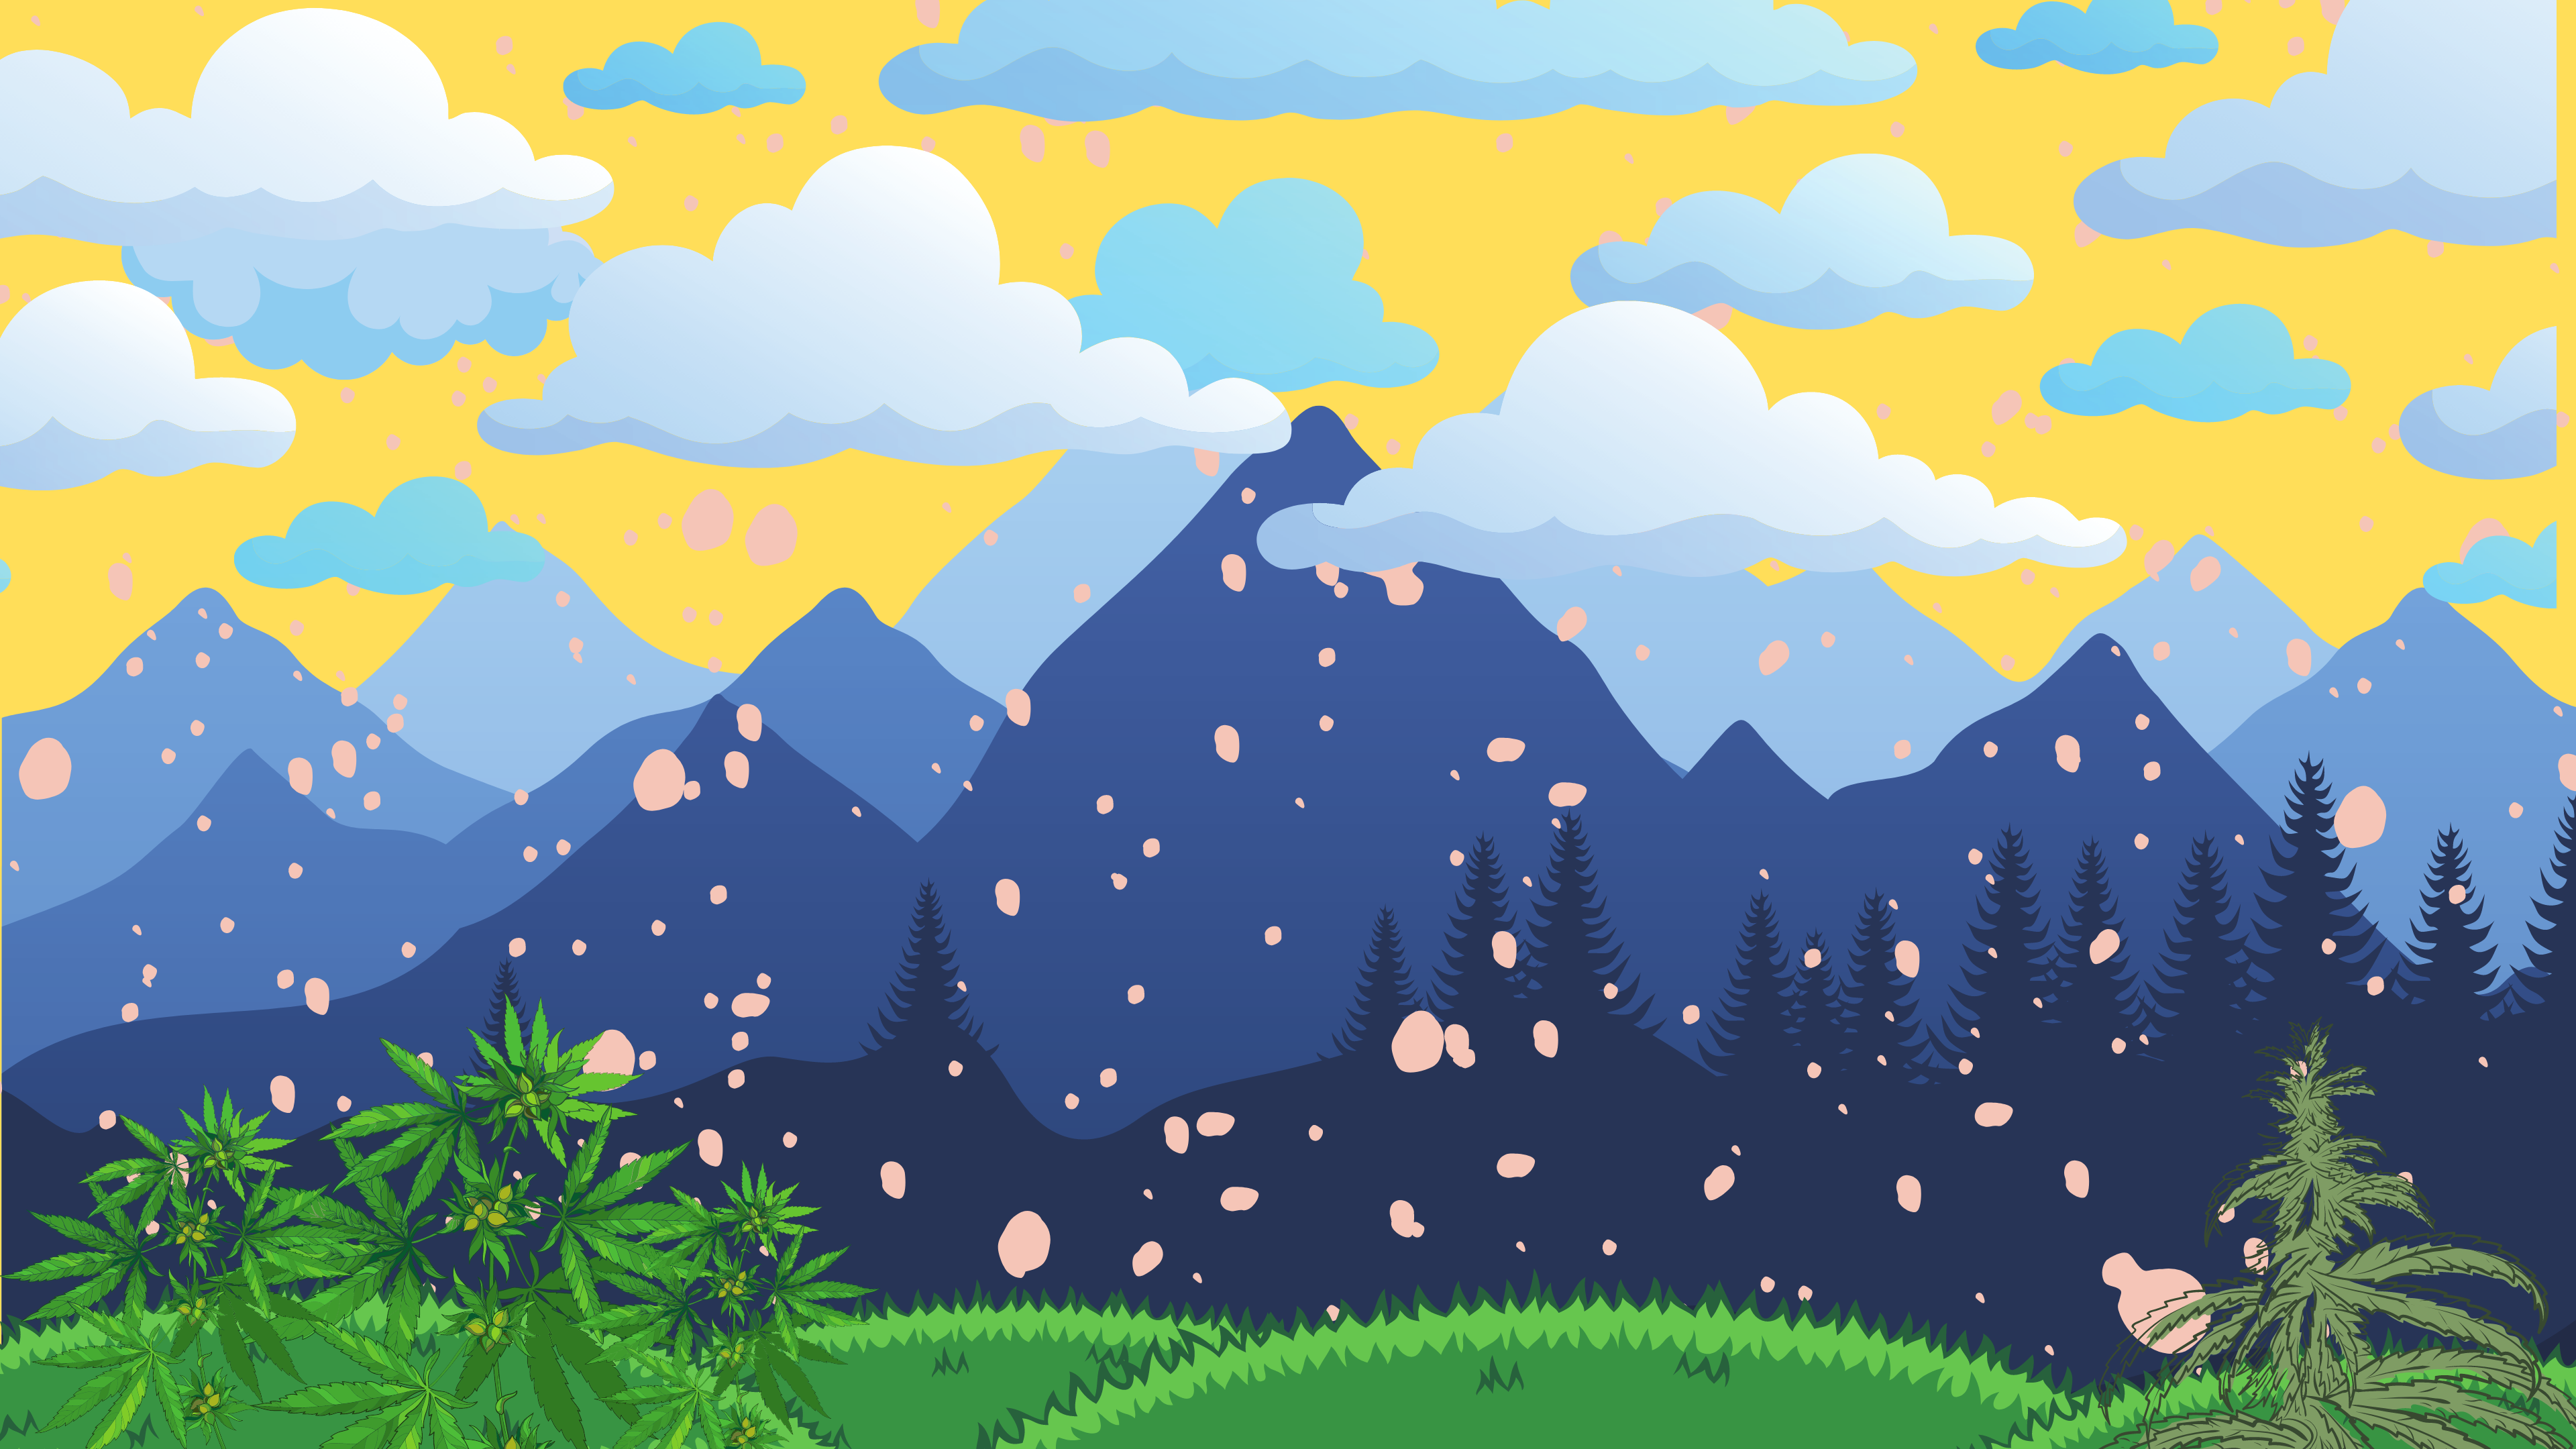 Grass with cannabis with mountains and clouds on a yellow background.